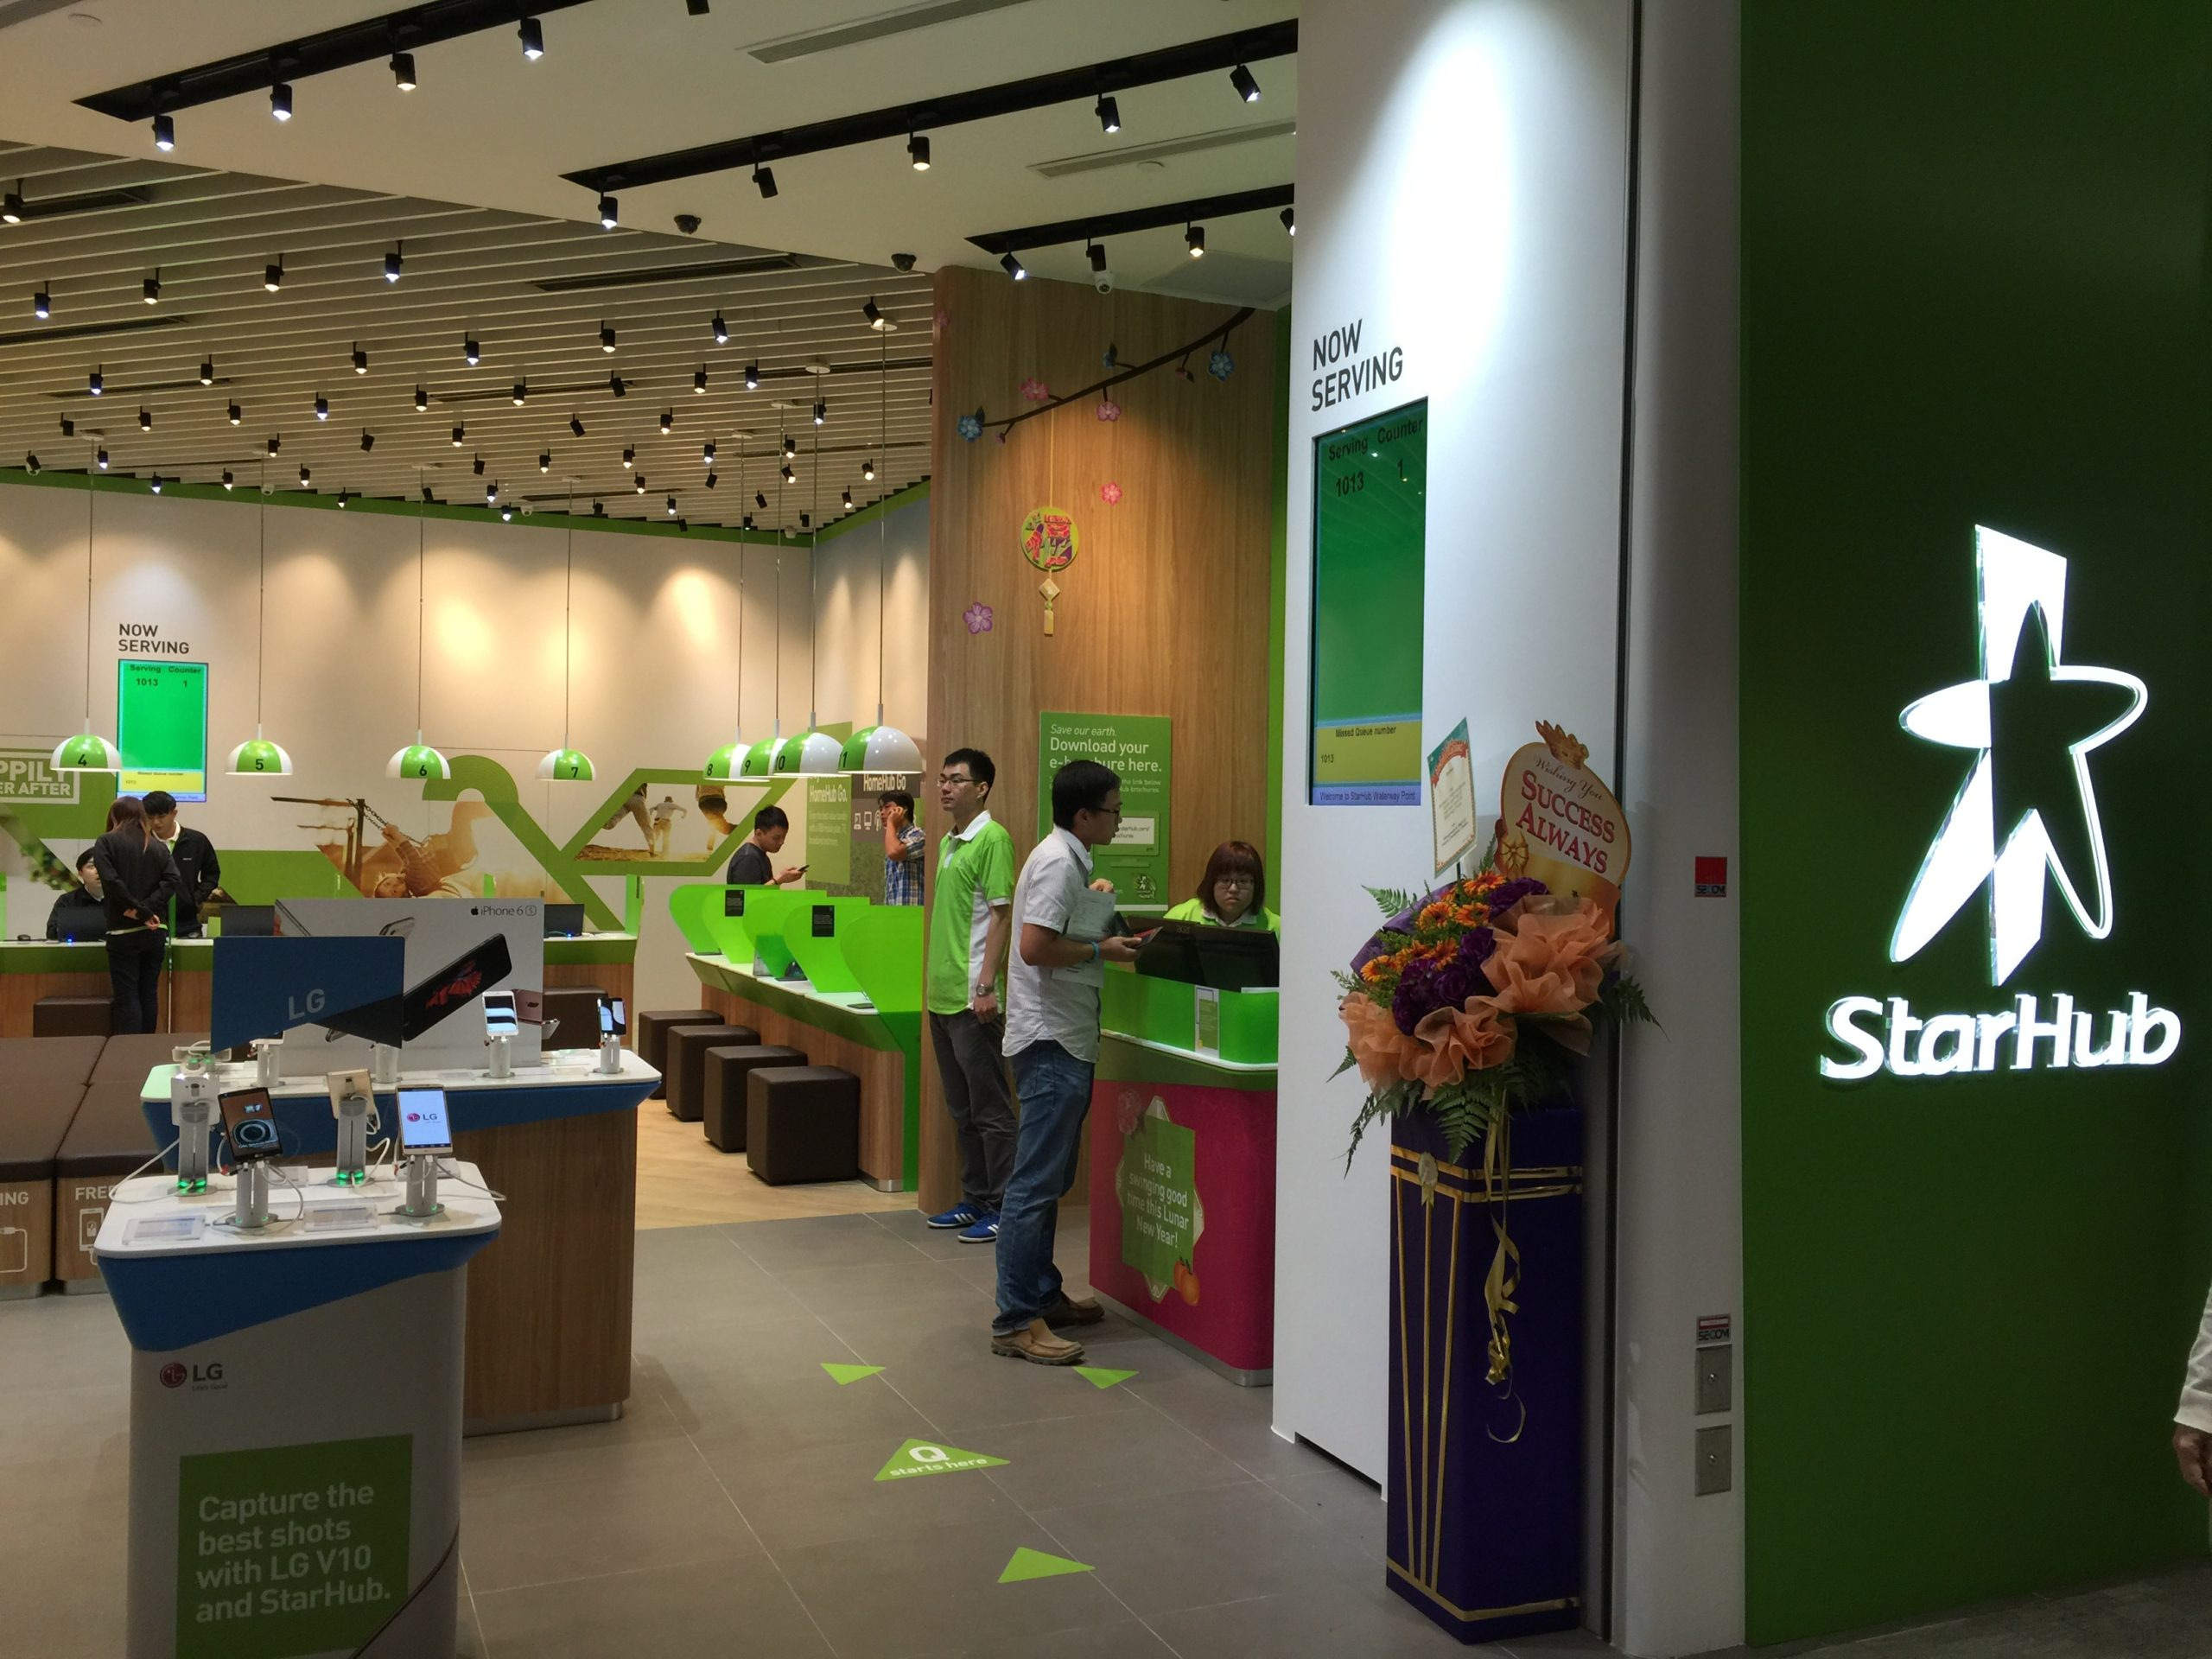 StarHub @ Waterway Point